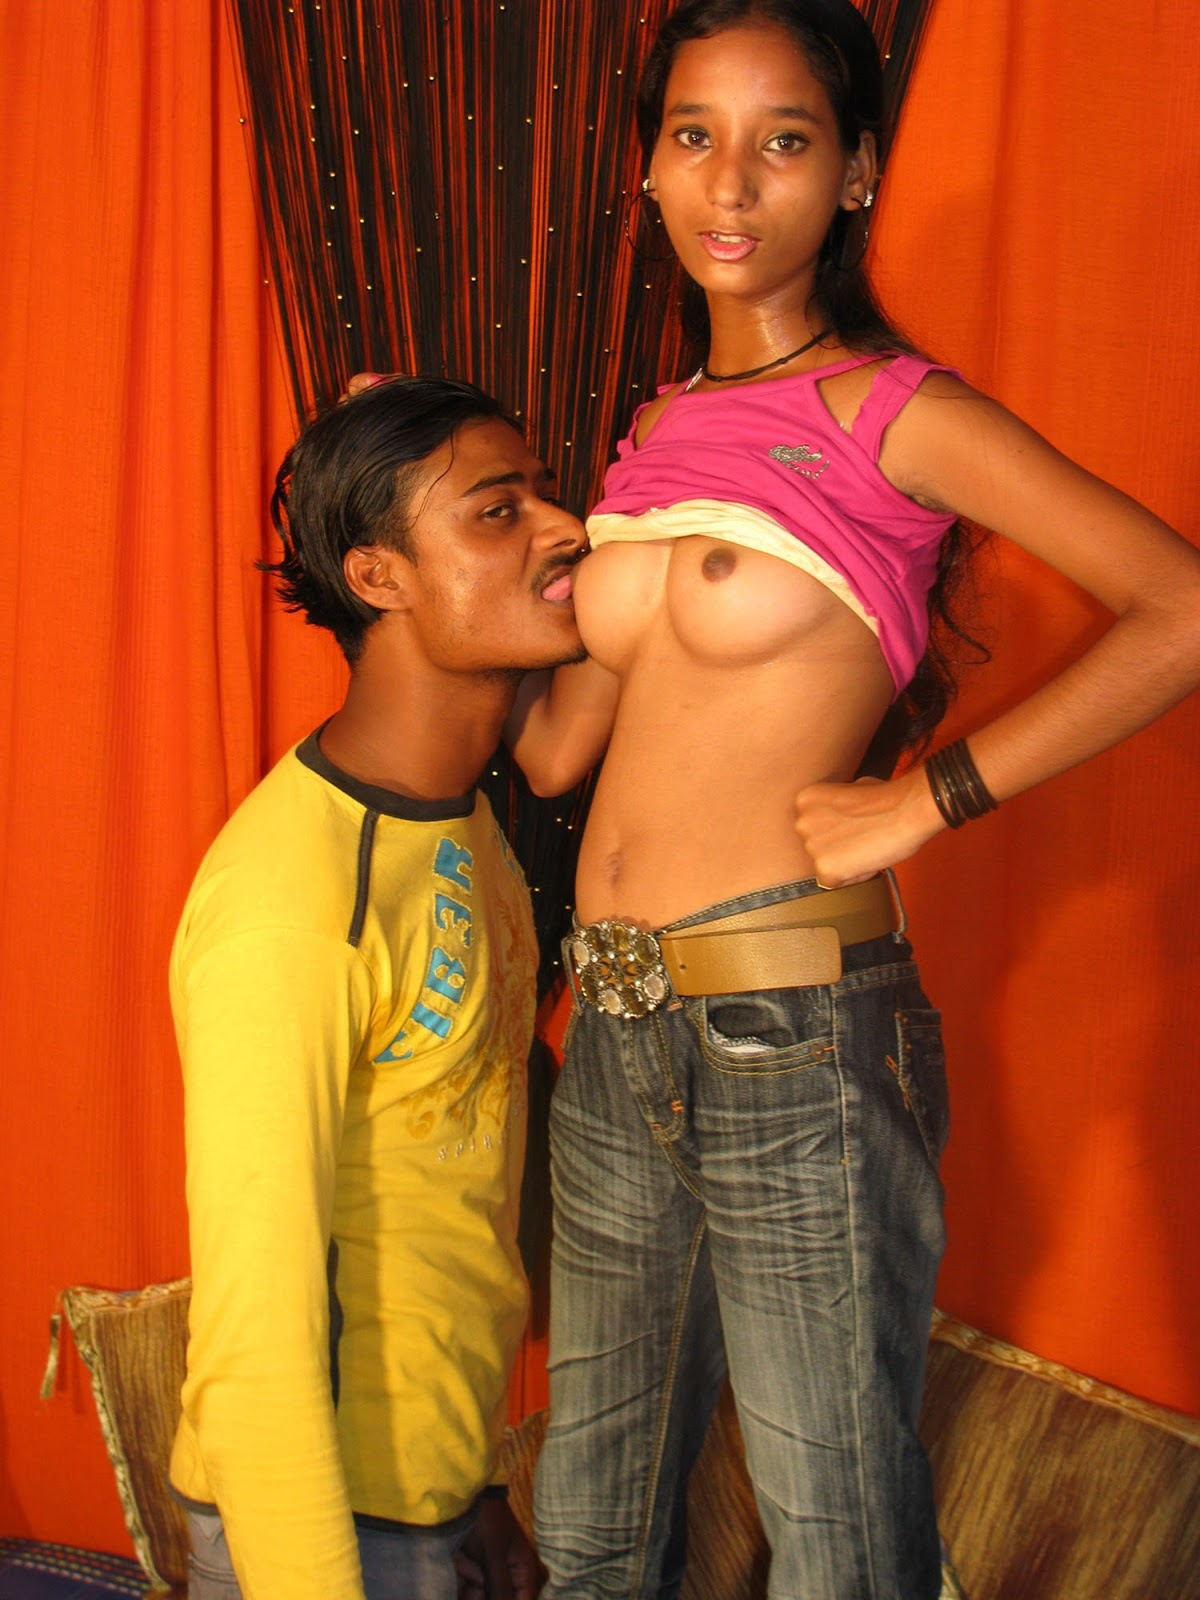 Loved desi bhabhi xxx splendid. She's